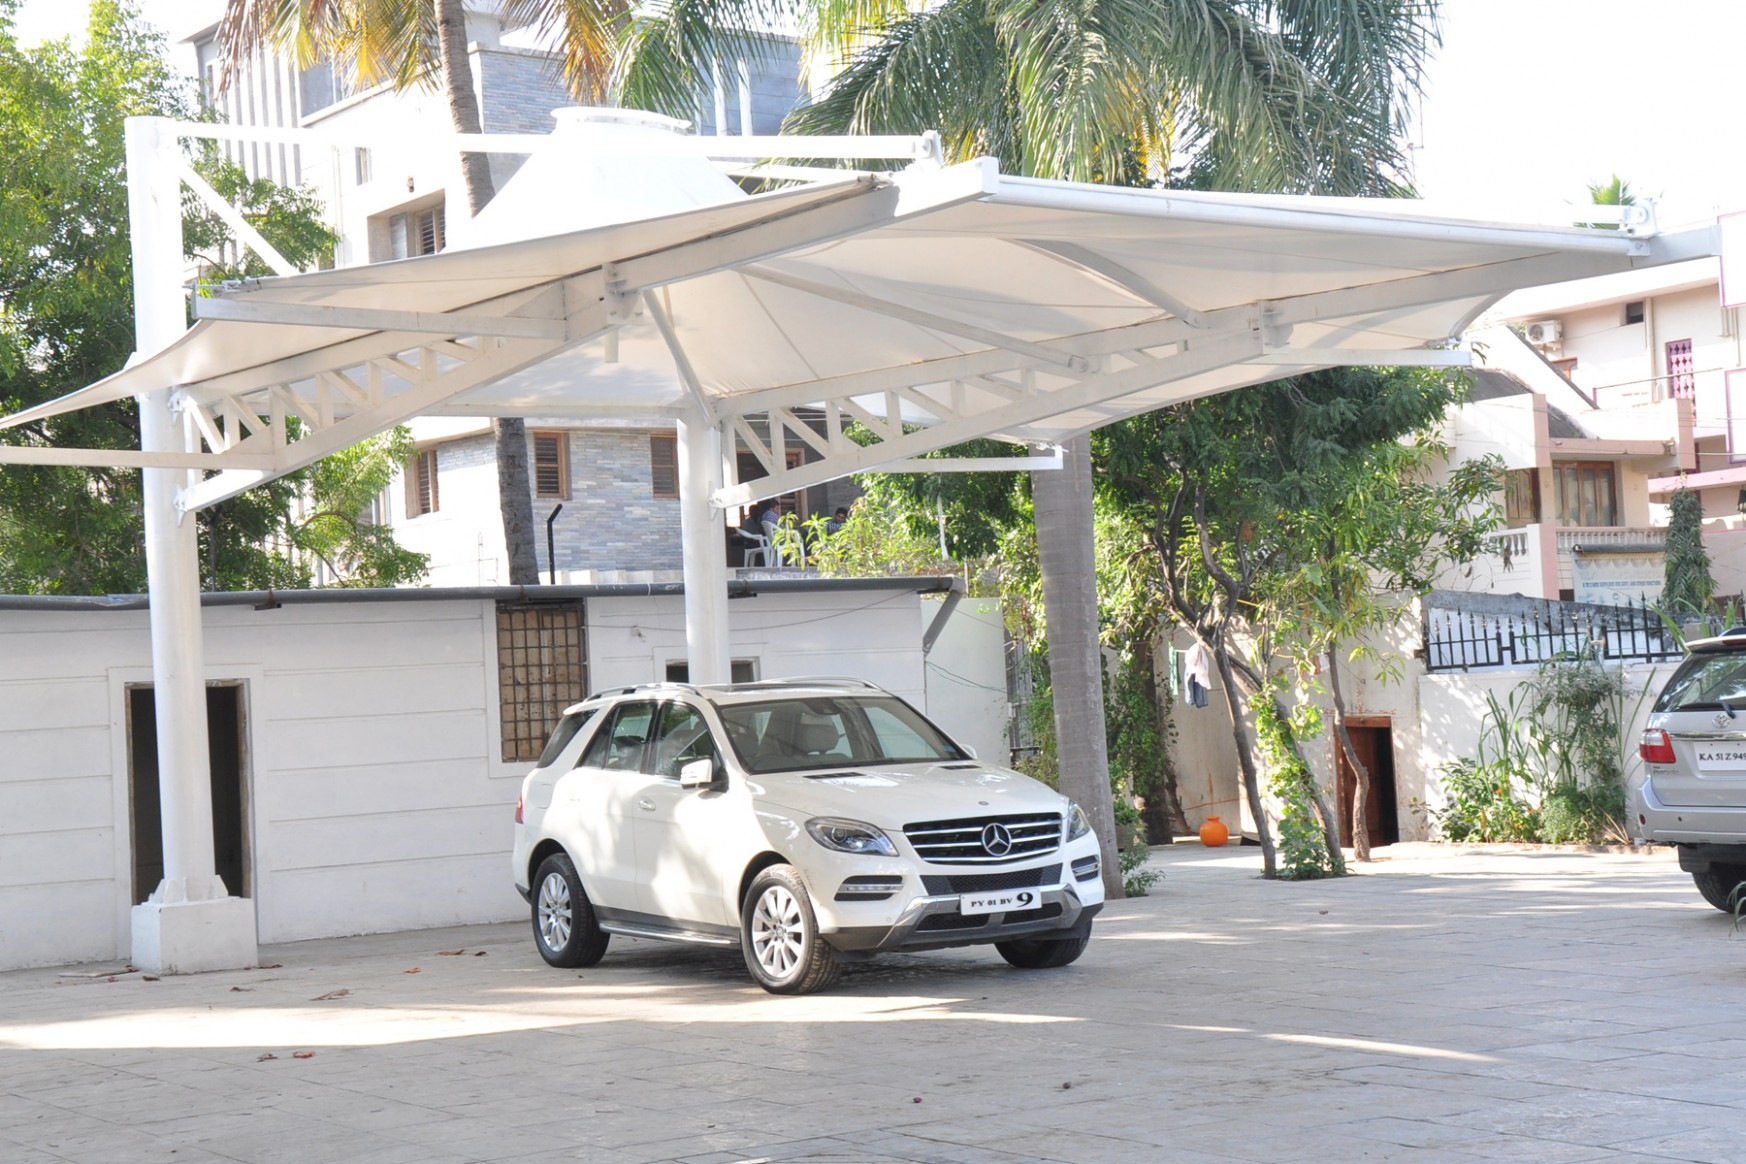 1517960834-agrya-structures-concept-commence-complete-car-park-canopy-design.jpg